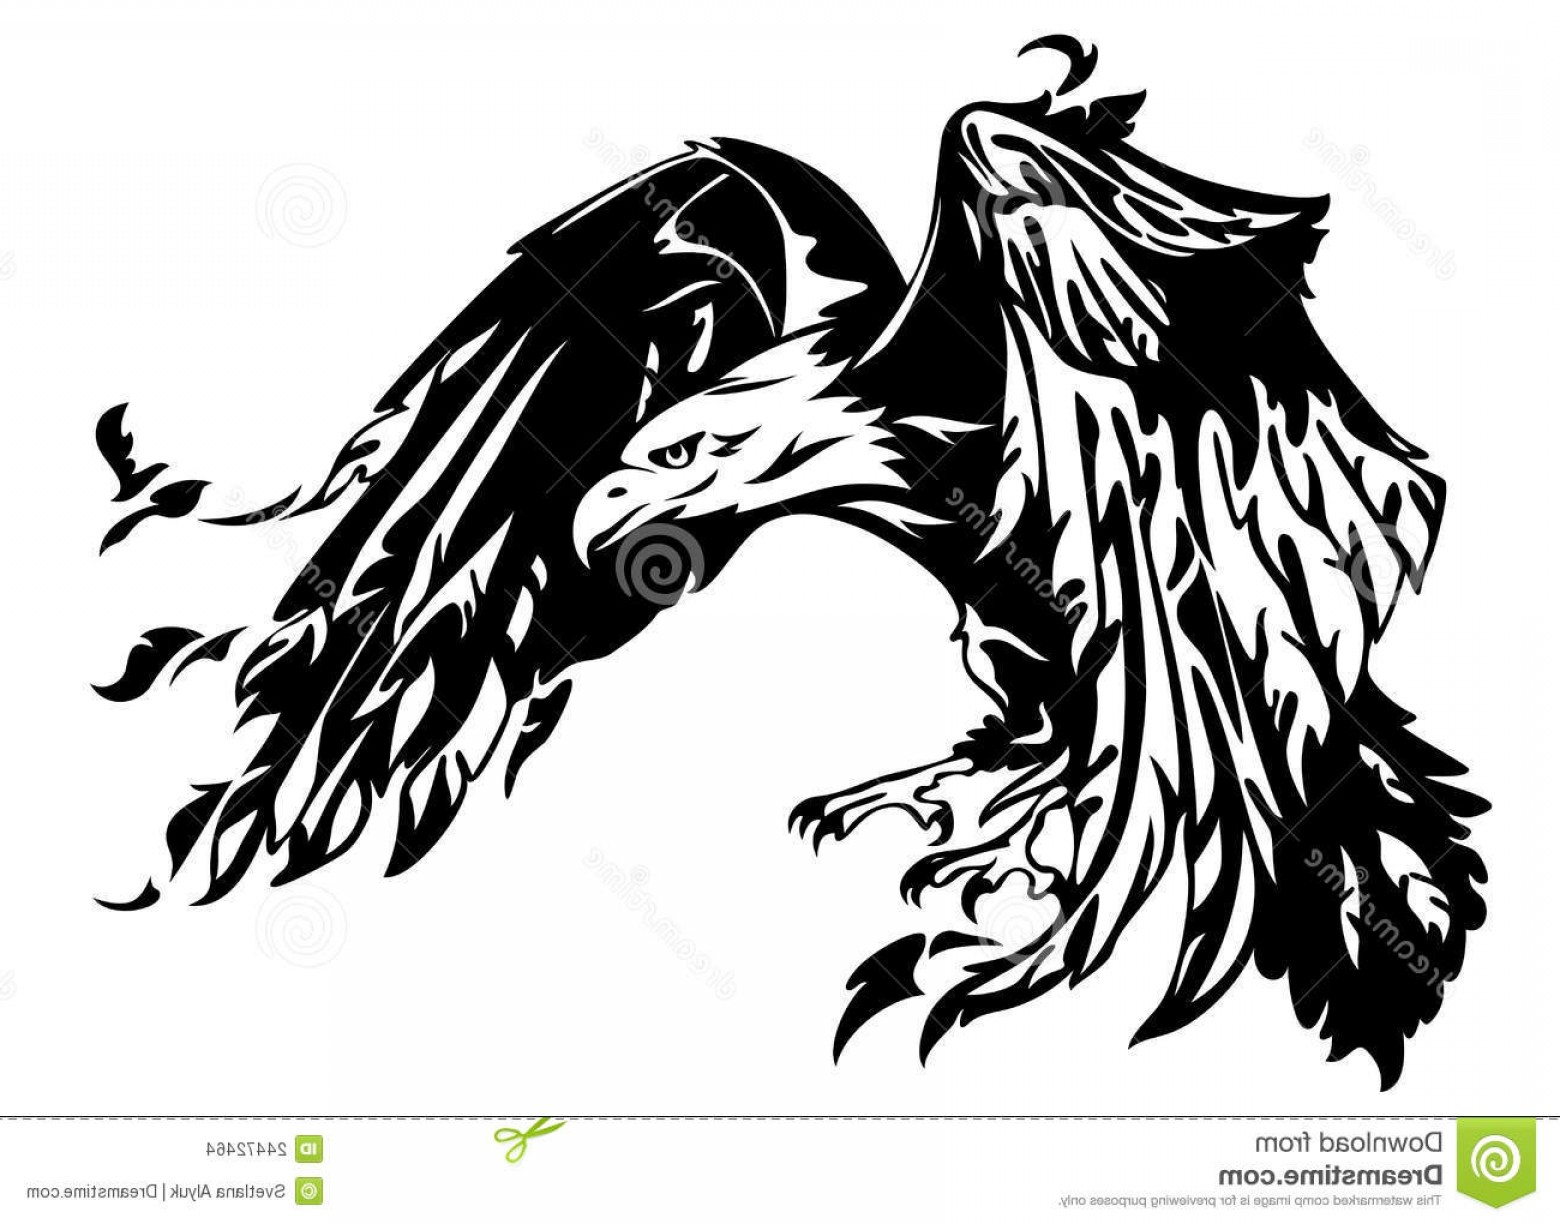 Patriotic Bald Eagle Vector: Stock Images Bald Eagle Vector Image